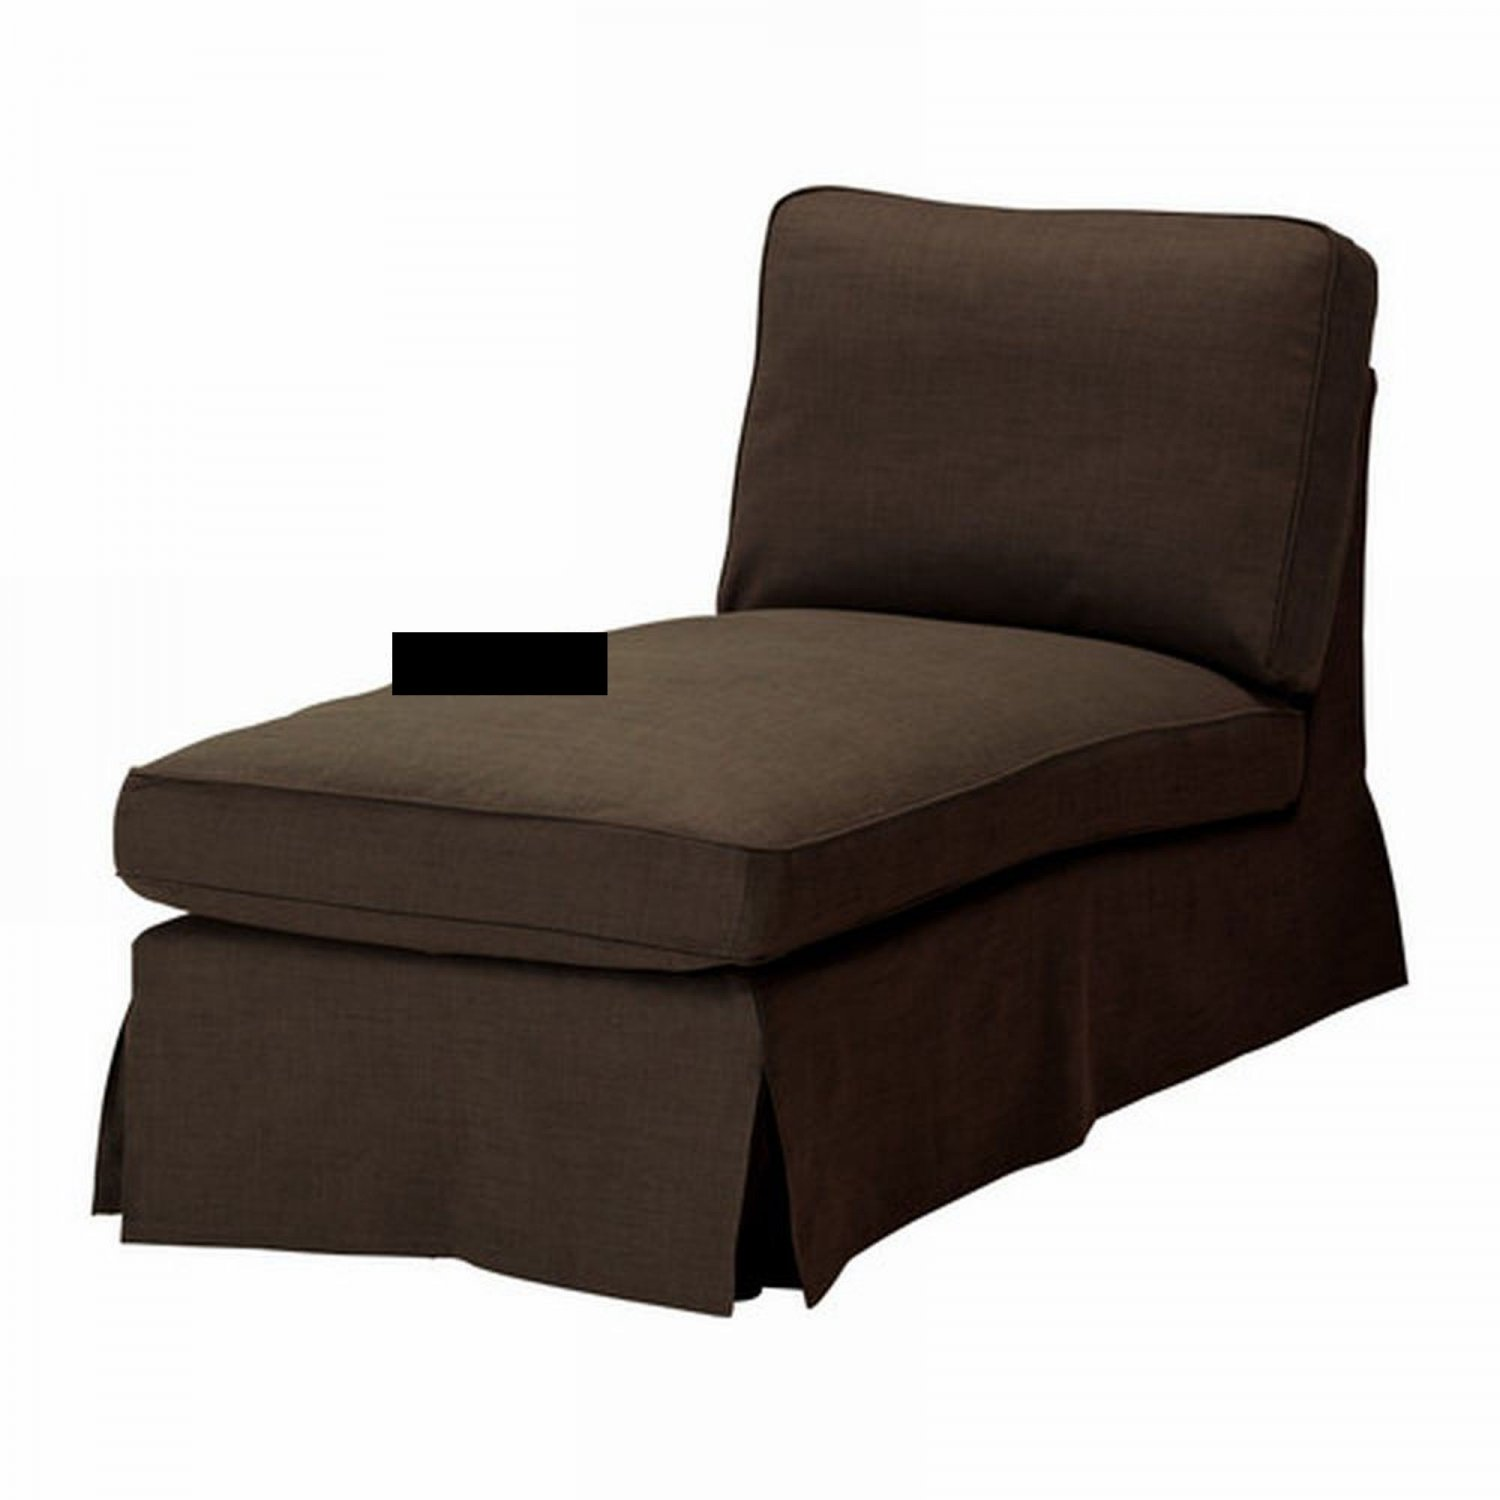 ikea ektorp chaise longue cover slipcover svanby brown free standing lounge. Black Bedroom Furniture Sets. Home Design Ideas